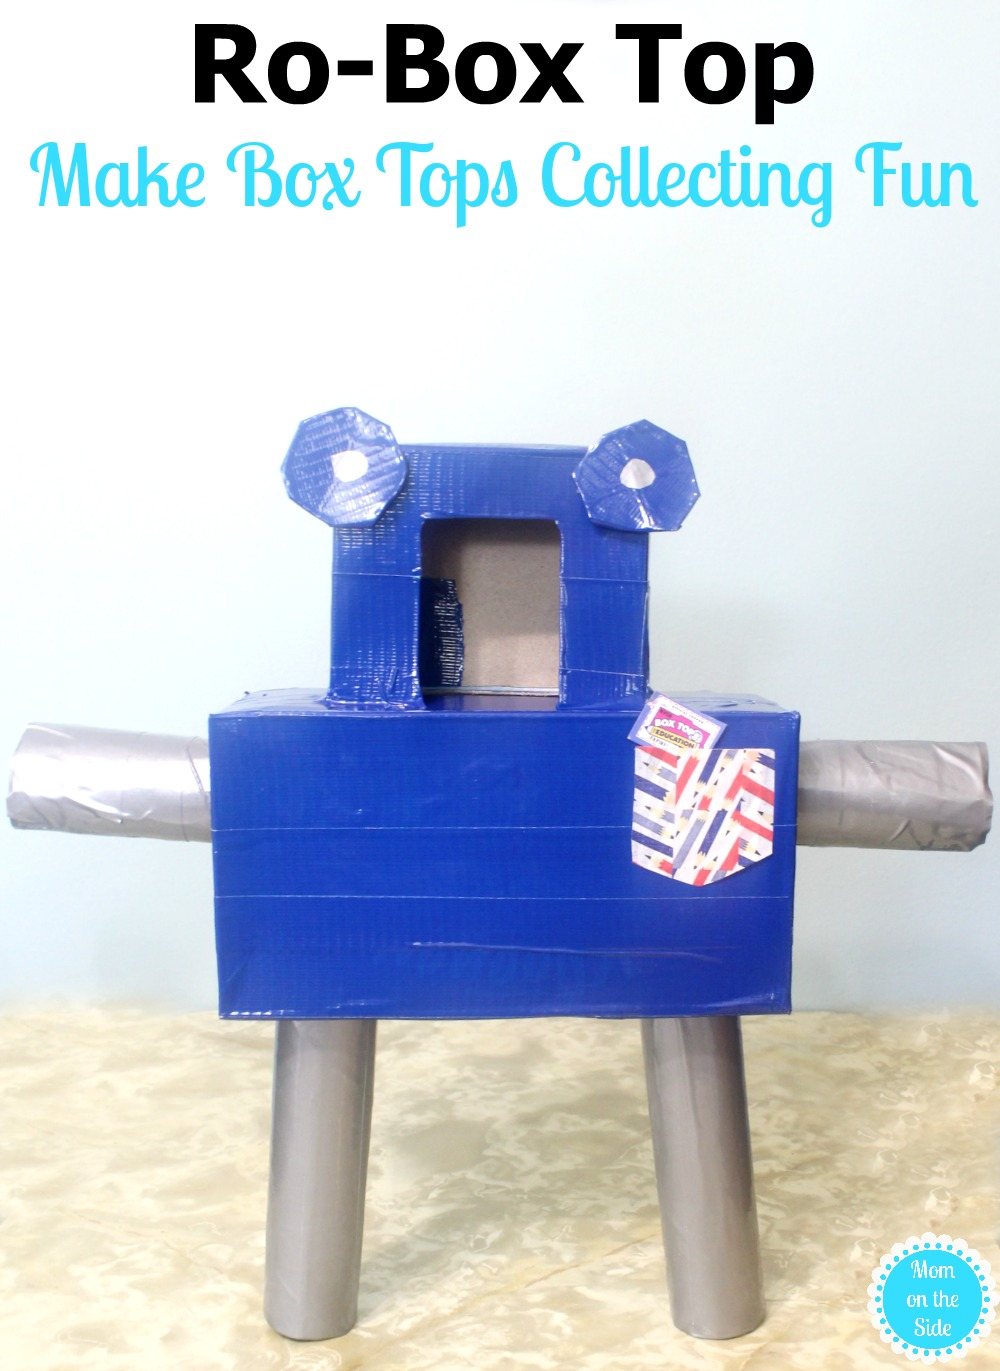 Make Box Tops Collecting Fun with Ro-Box Top Kleenex Box Craft